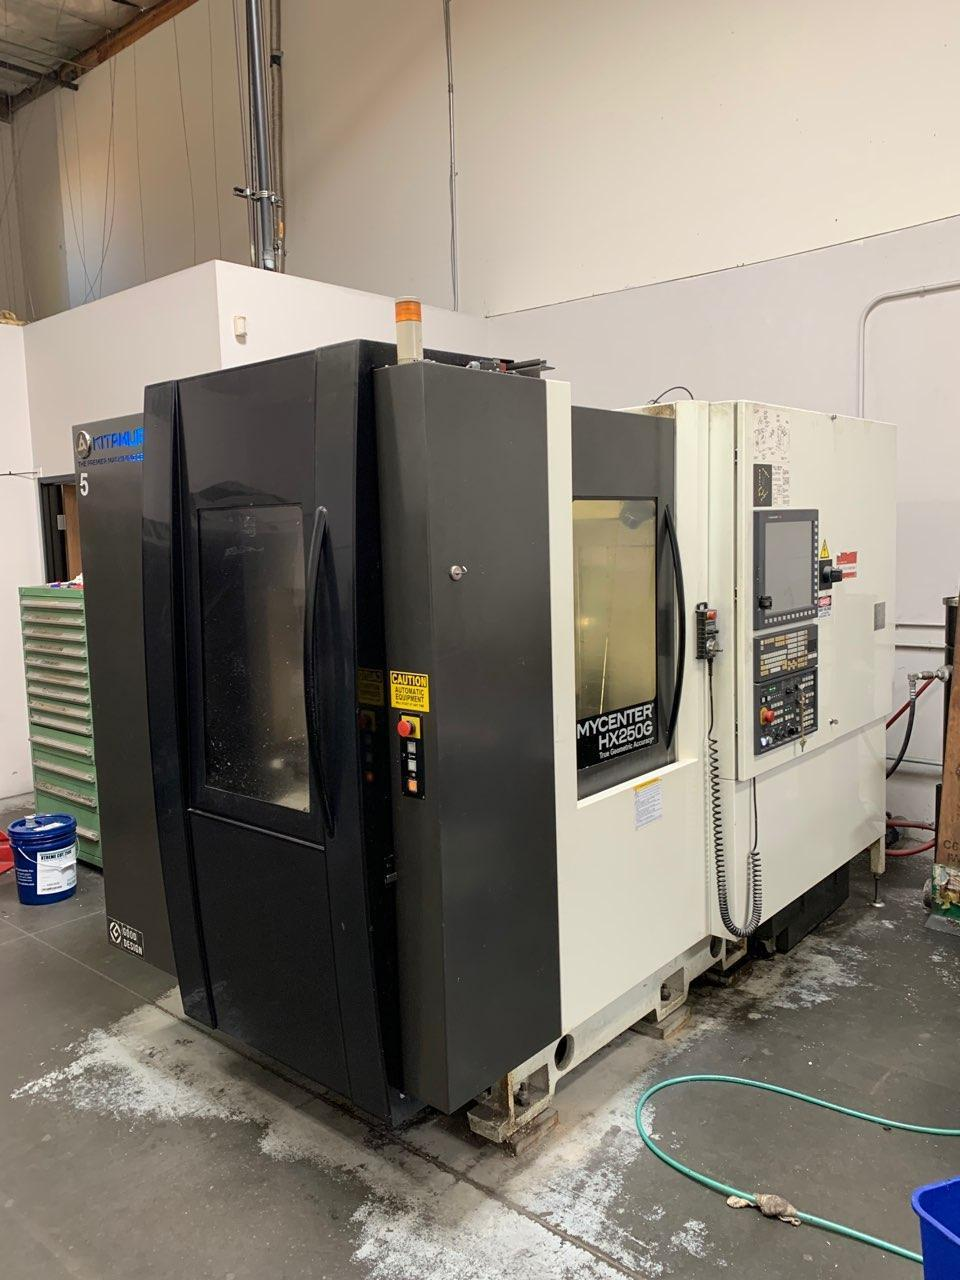 Kitamura Mycenter HX250G HMC 2014 with: Arumatik-Mi CNC Control, Laser Tool Setter, Spindle Probe, 15k RPM Spindle, BT-30 Taper, 40-ATC, TSC, and Chip Conveyor.